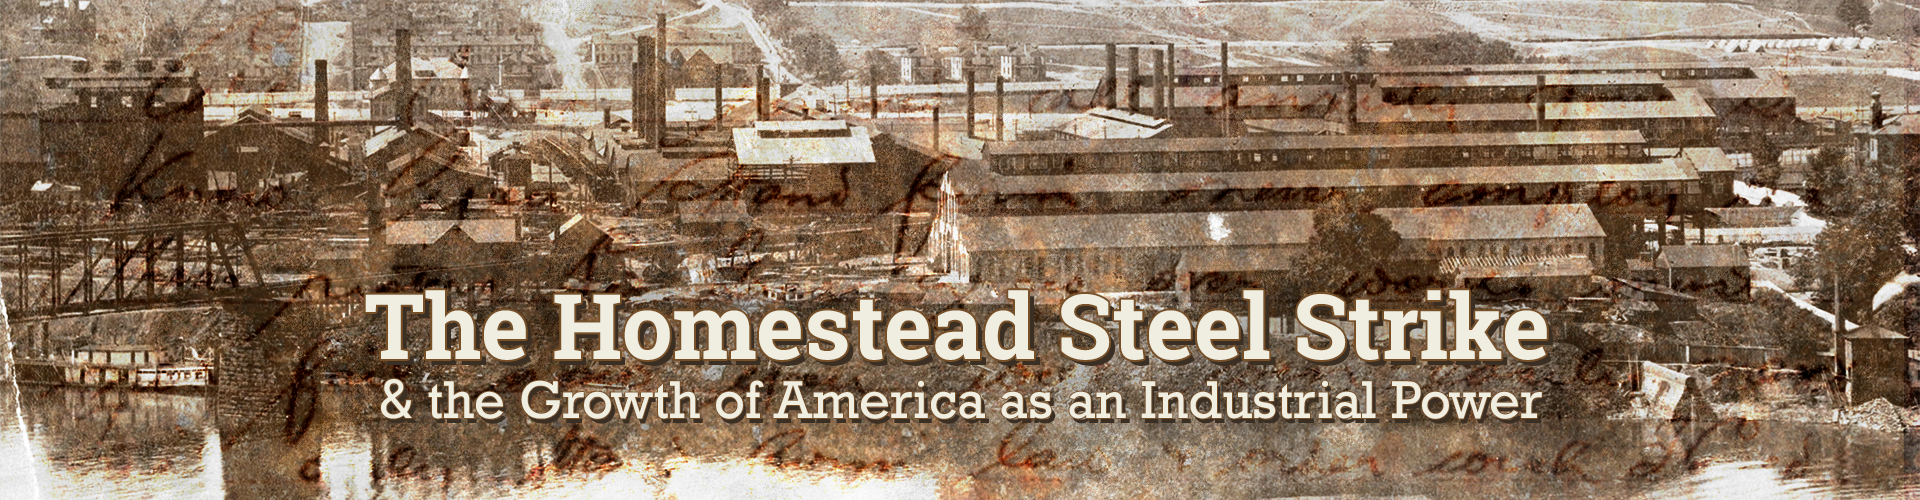 The Homestead Steel Strike & the growth of America as an industrial power